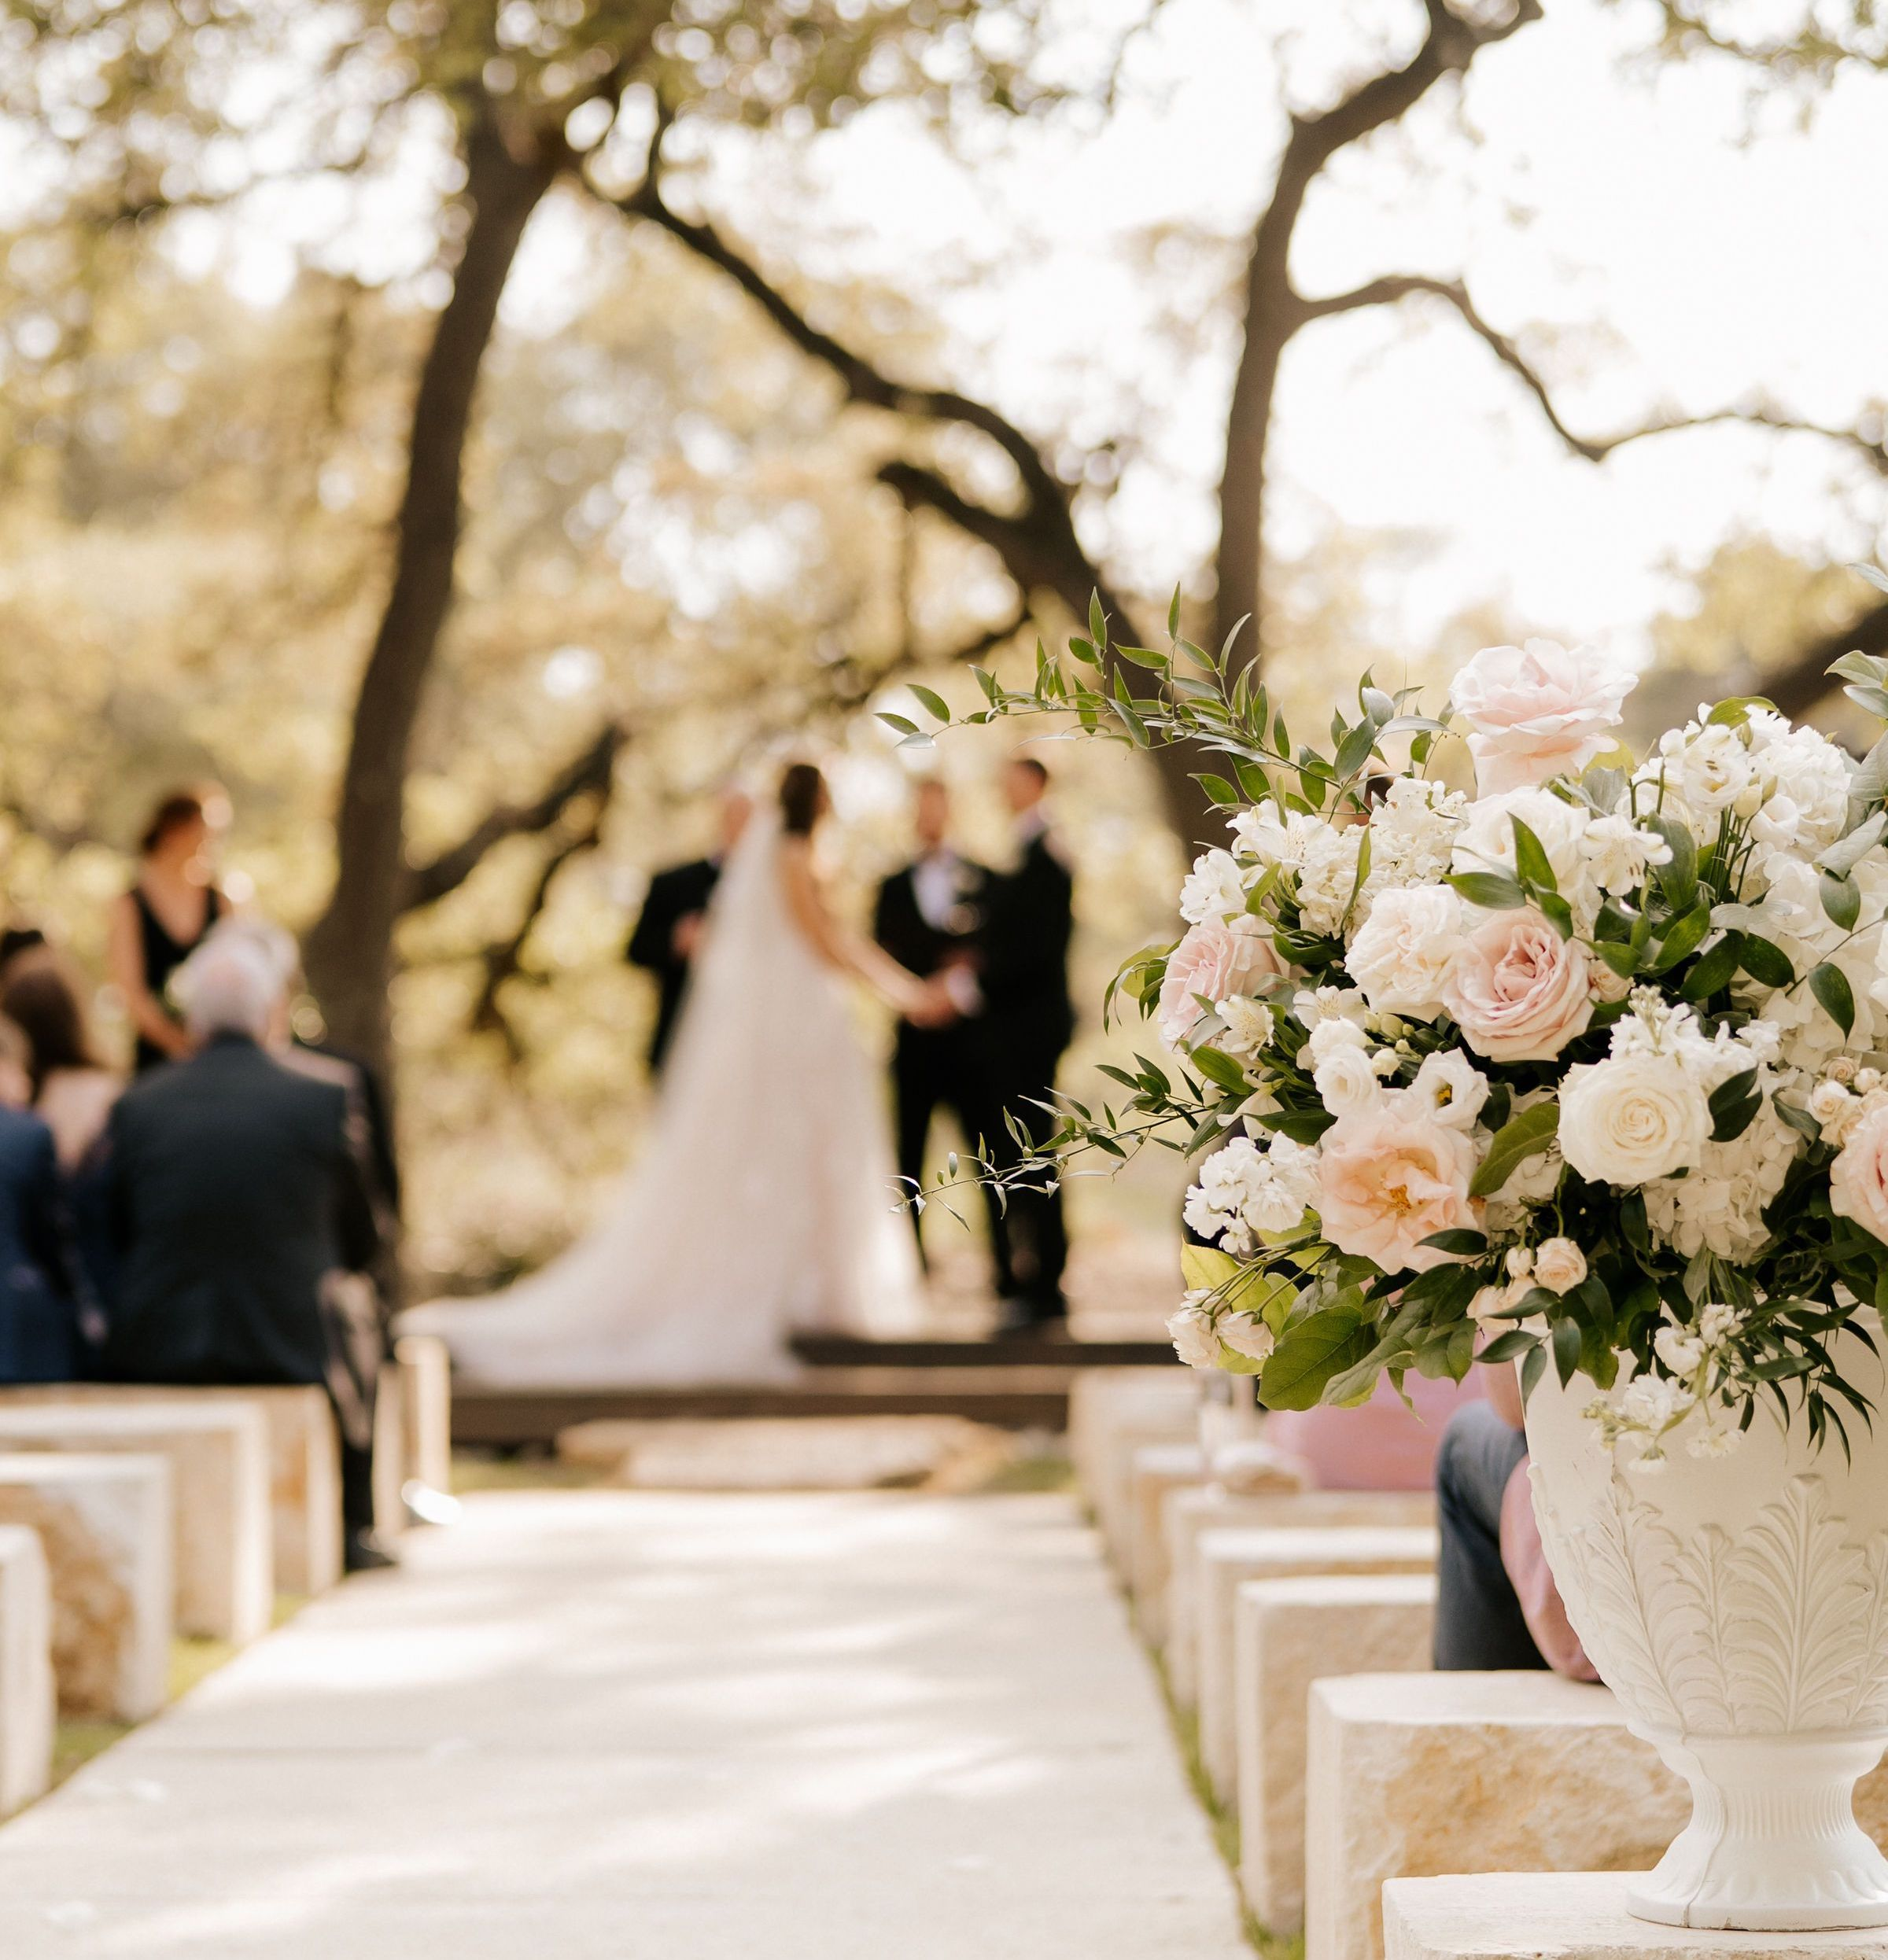 The couple stands under a canopy of trees in the distance while exchanging vows as a blush and white floral arrangement rests on a stone pew in focus.